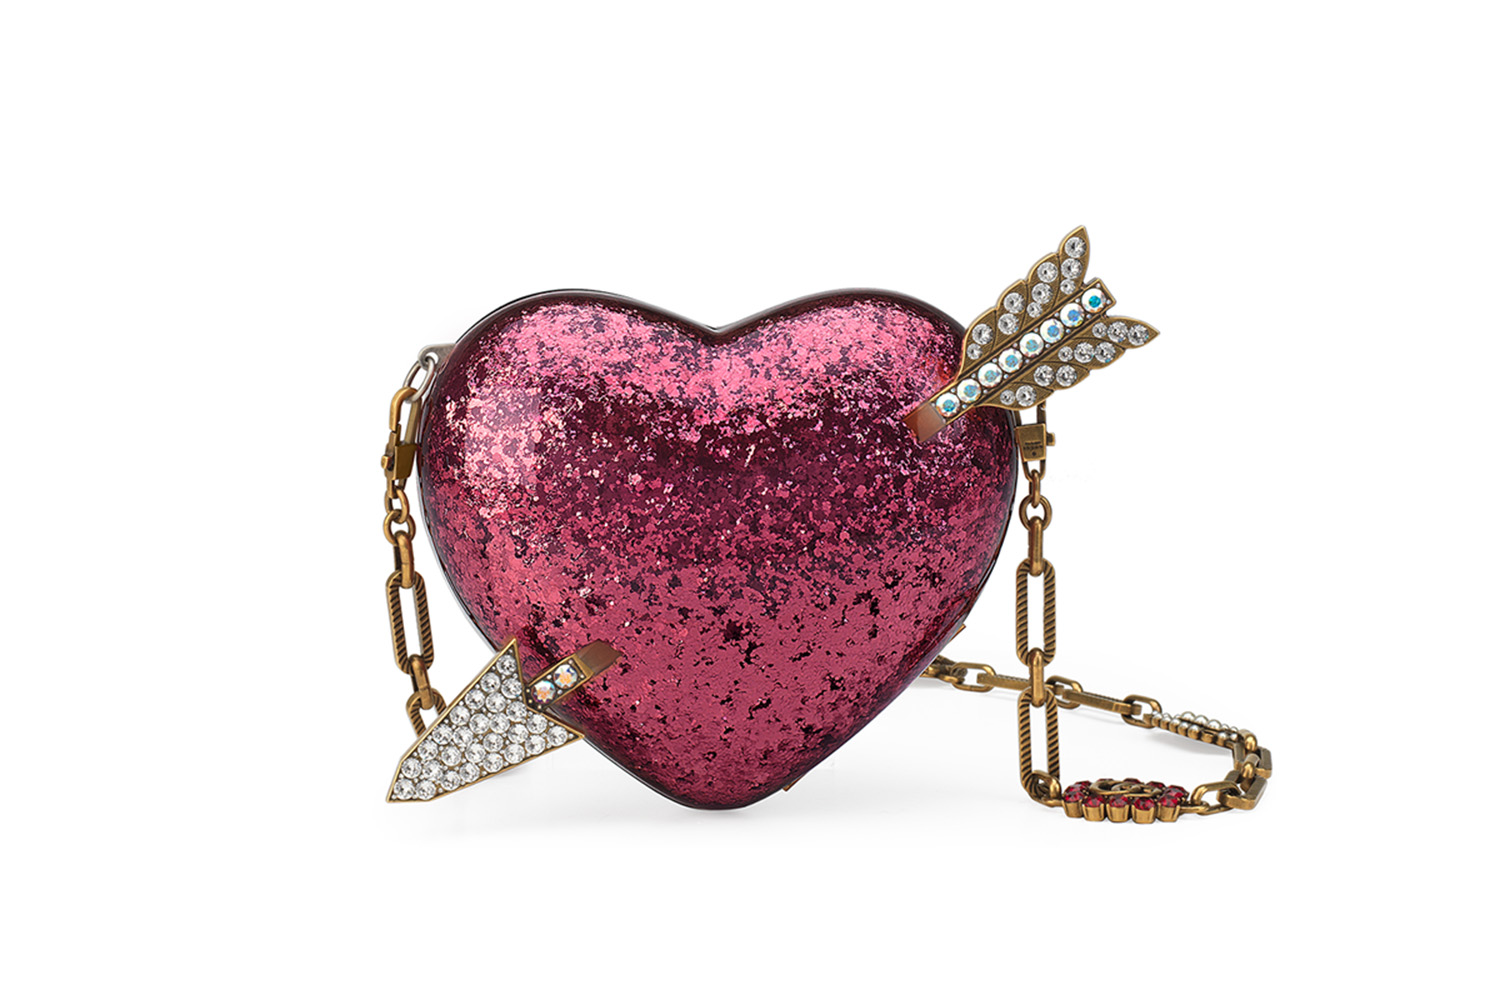 Cupid's arrow. We're crushing on Gucci's minaudière clutch so hard. Tragically, it doesn't return our feelings. Oh, the exquisite torture!; $3,700, neimanmarcus.com.